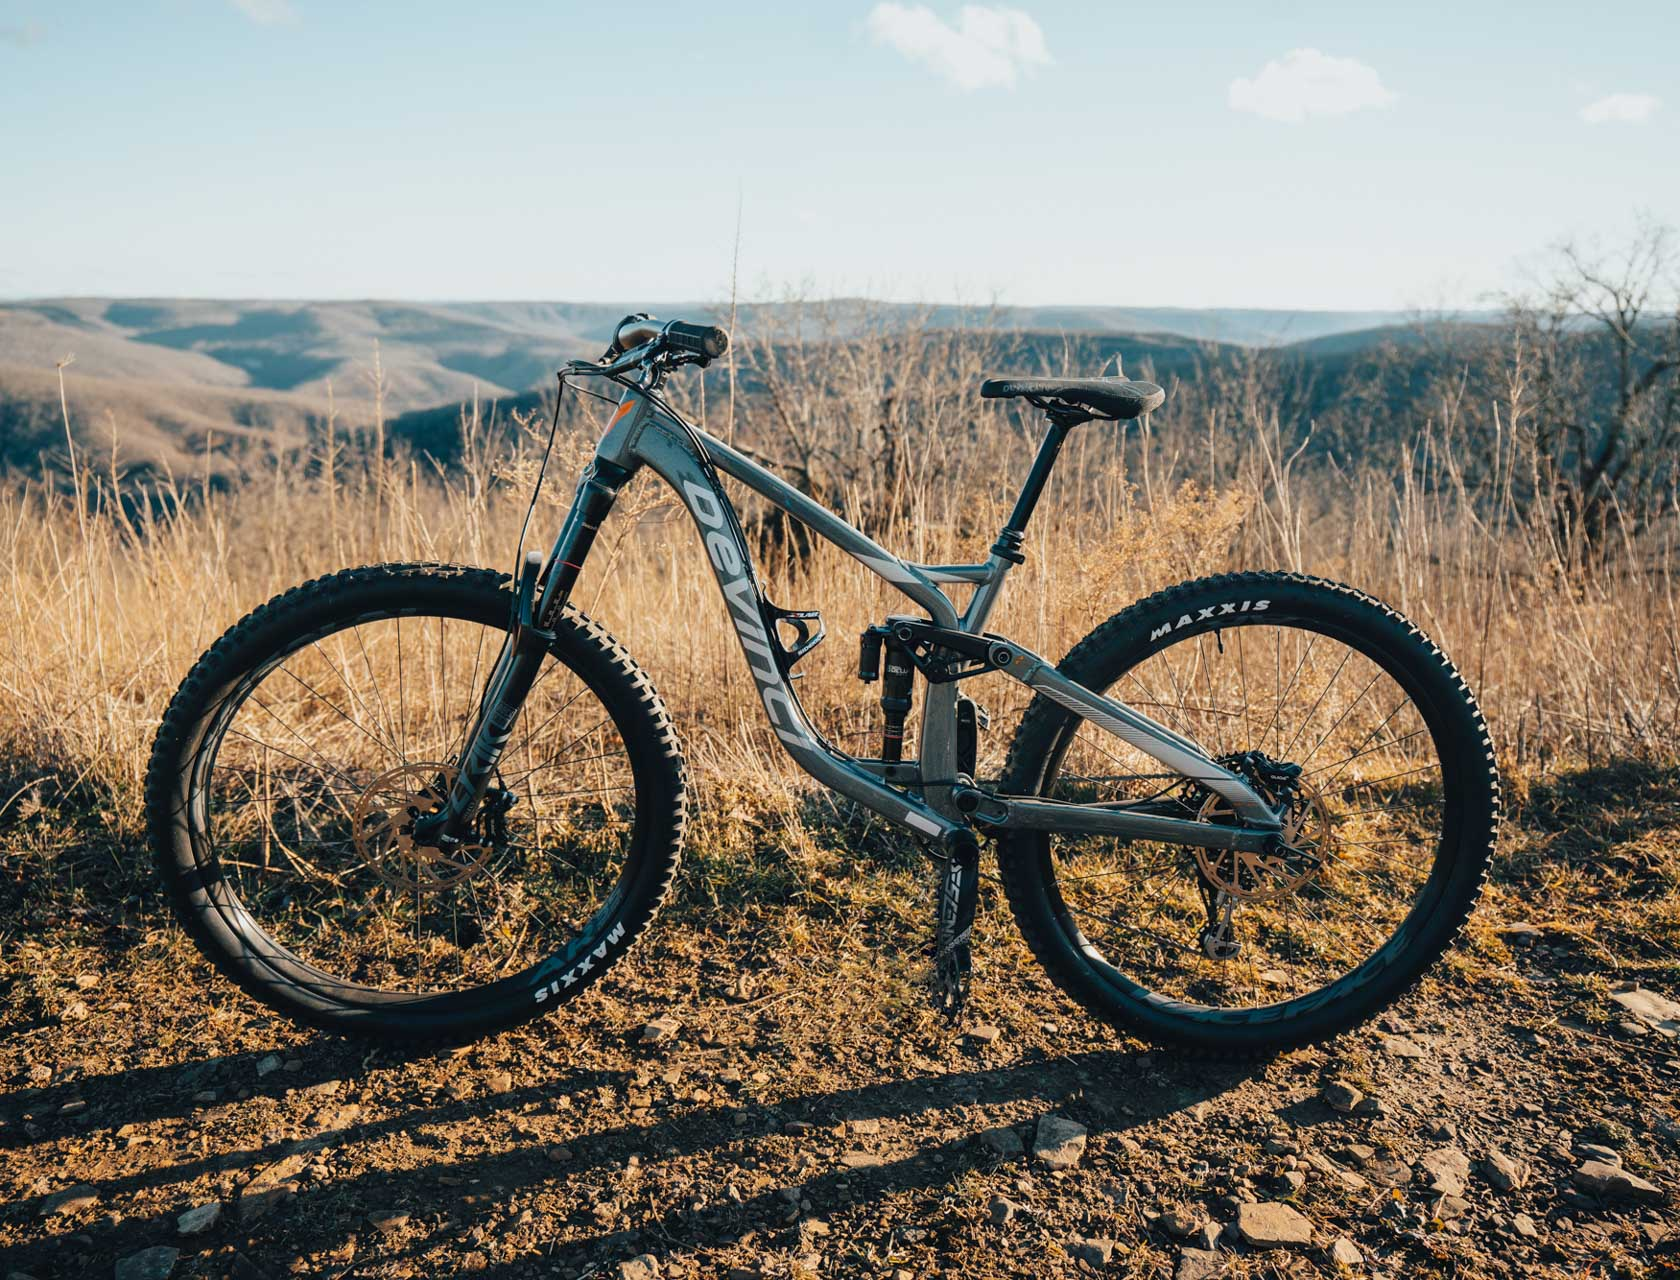 Mountain bike rental for the Ponca Downhill Trail in Arkansas.